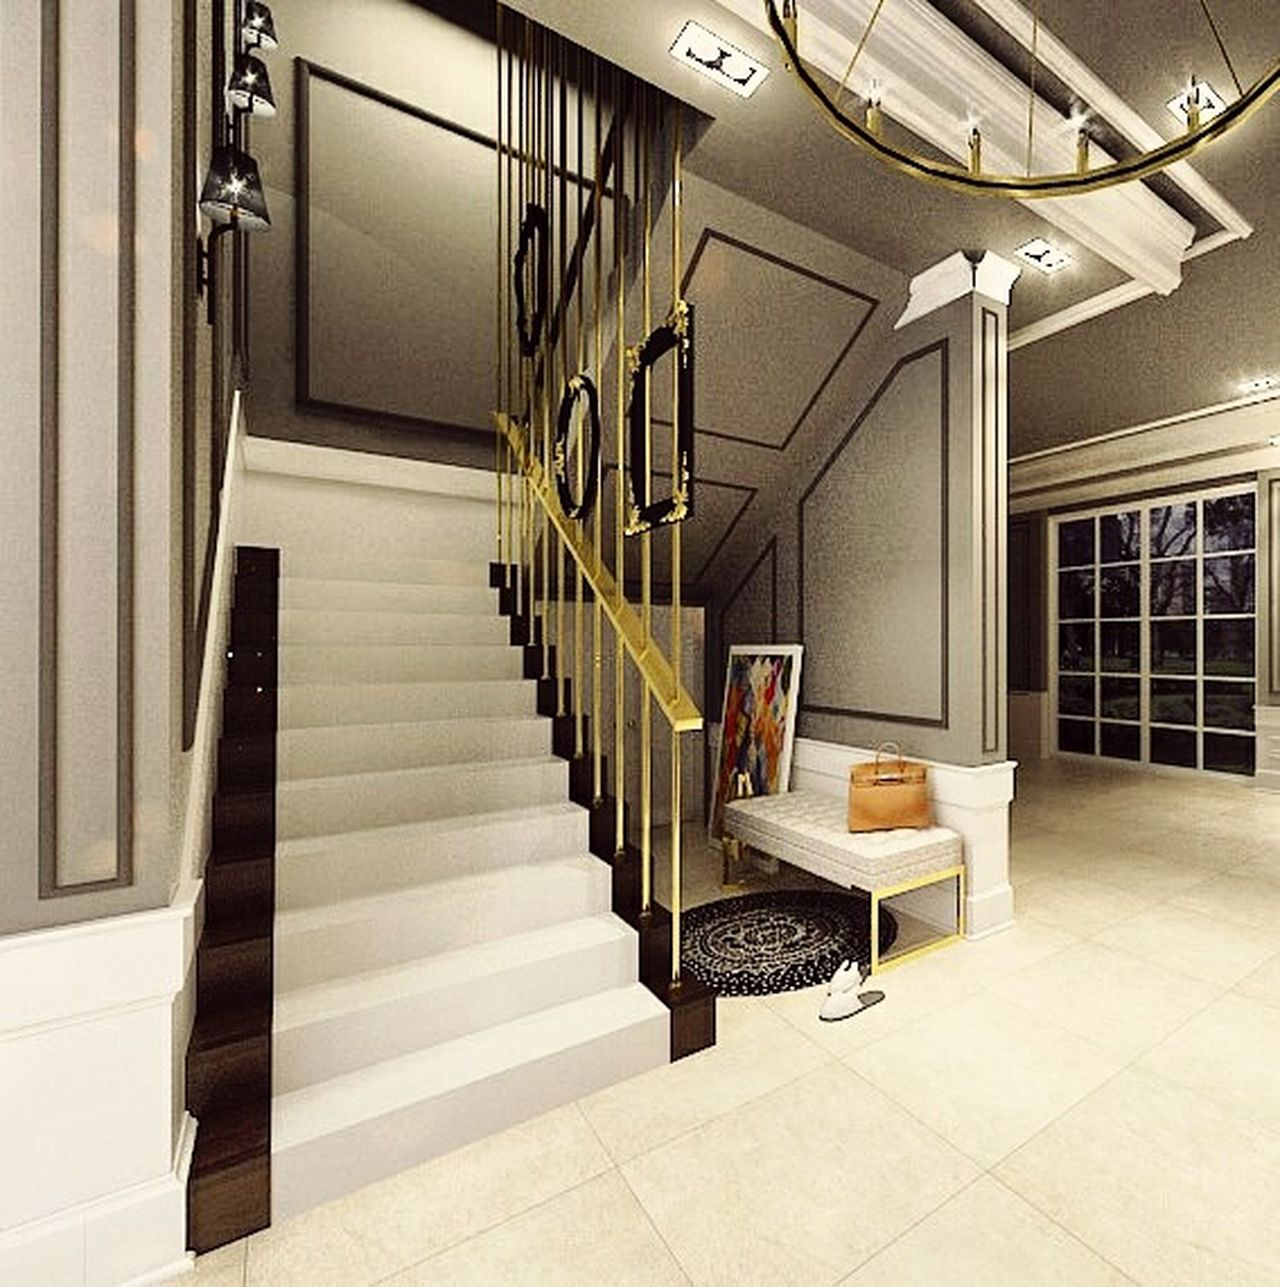 Modern Indoors  Diminishing Perspective Architectural Column Beautiful People Interior Design Mydesign